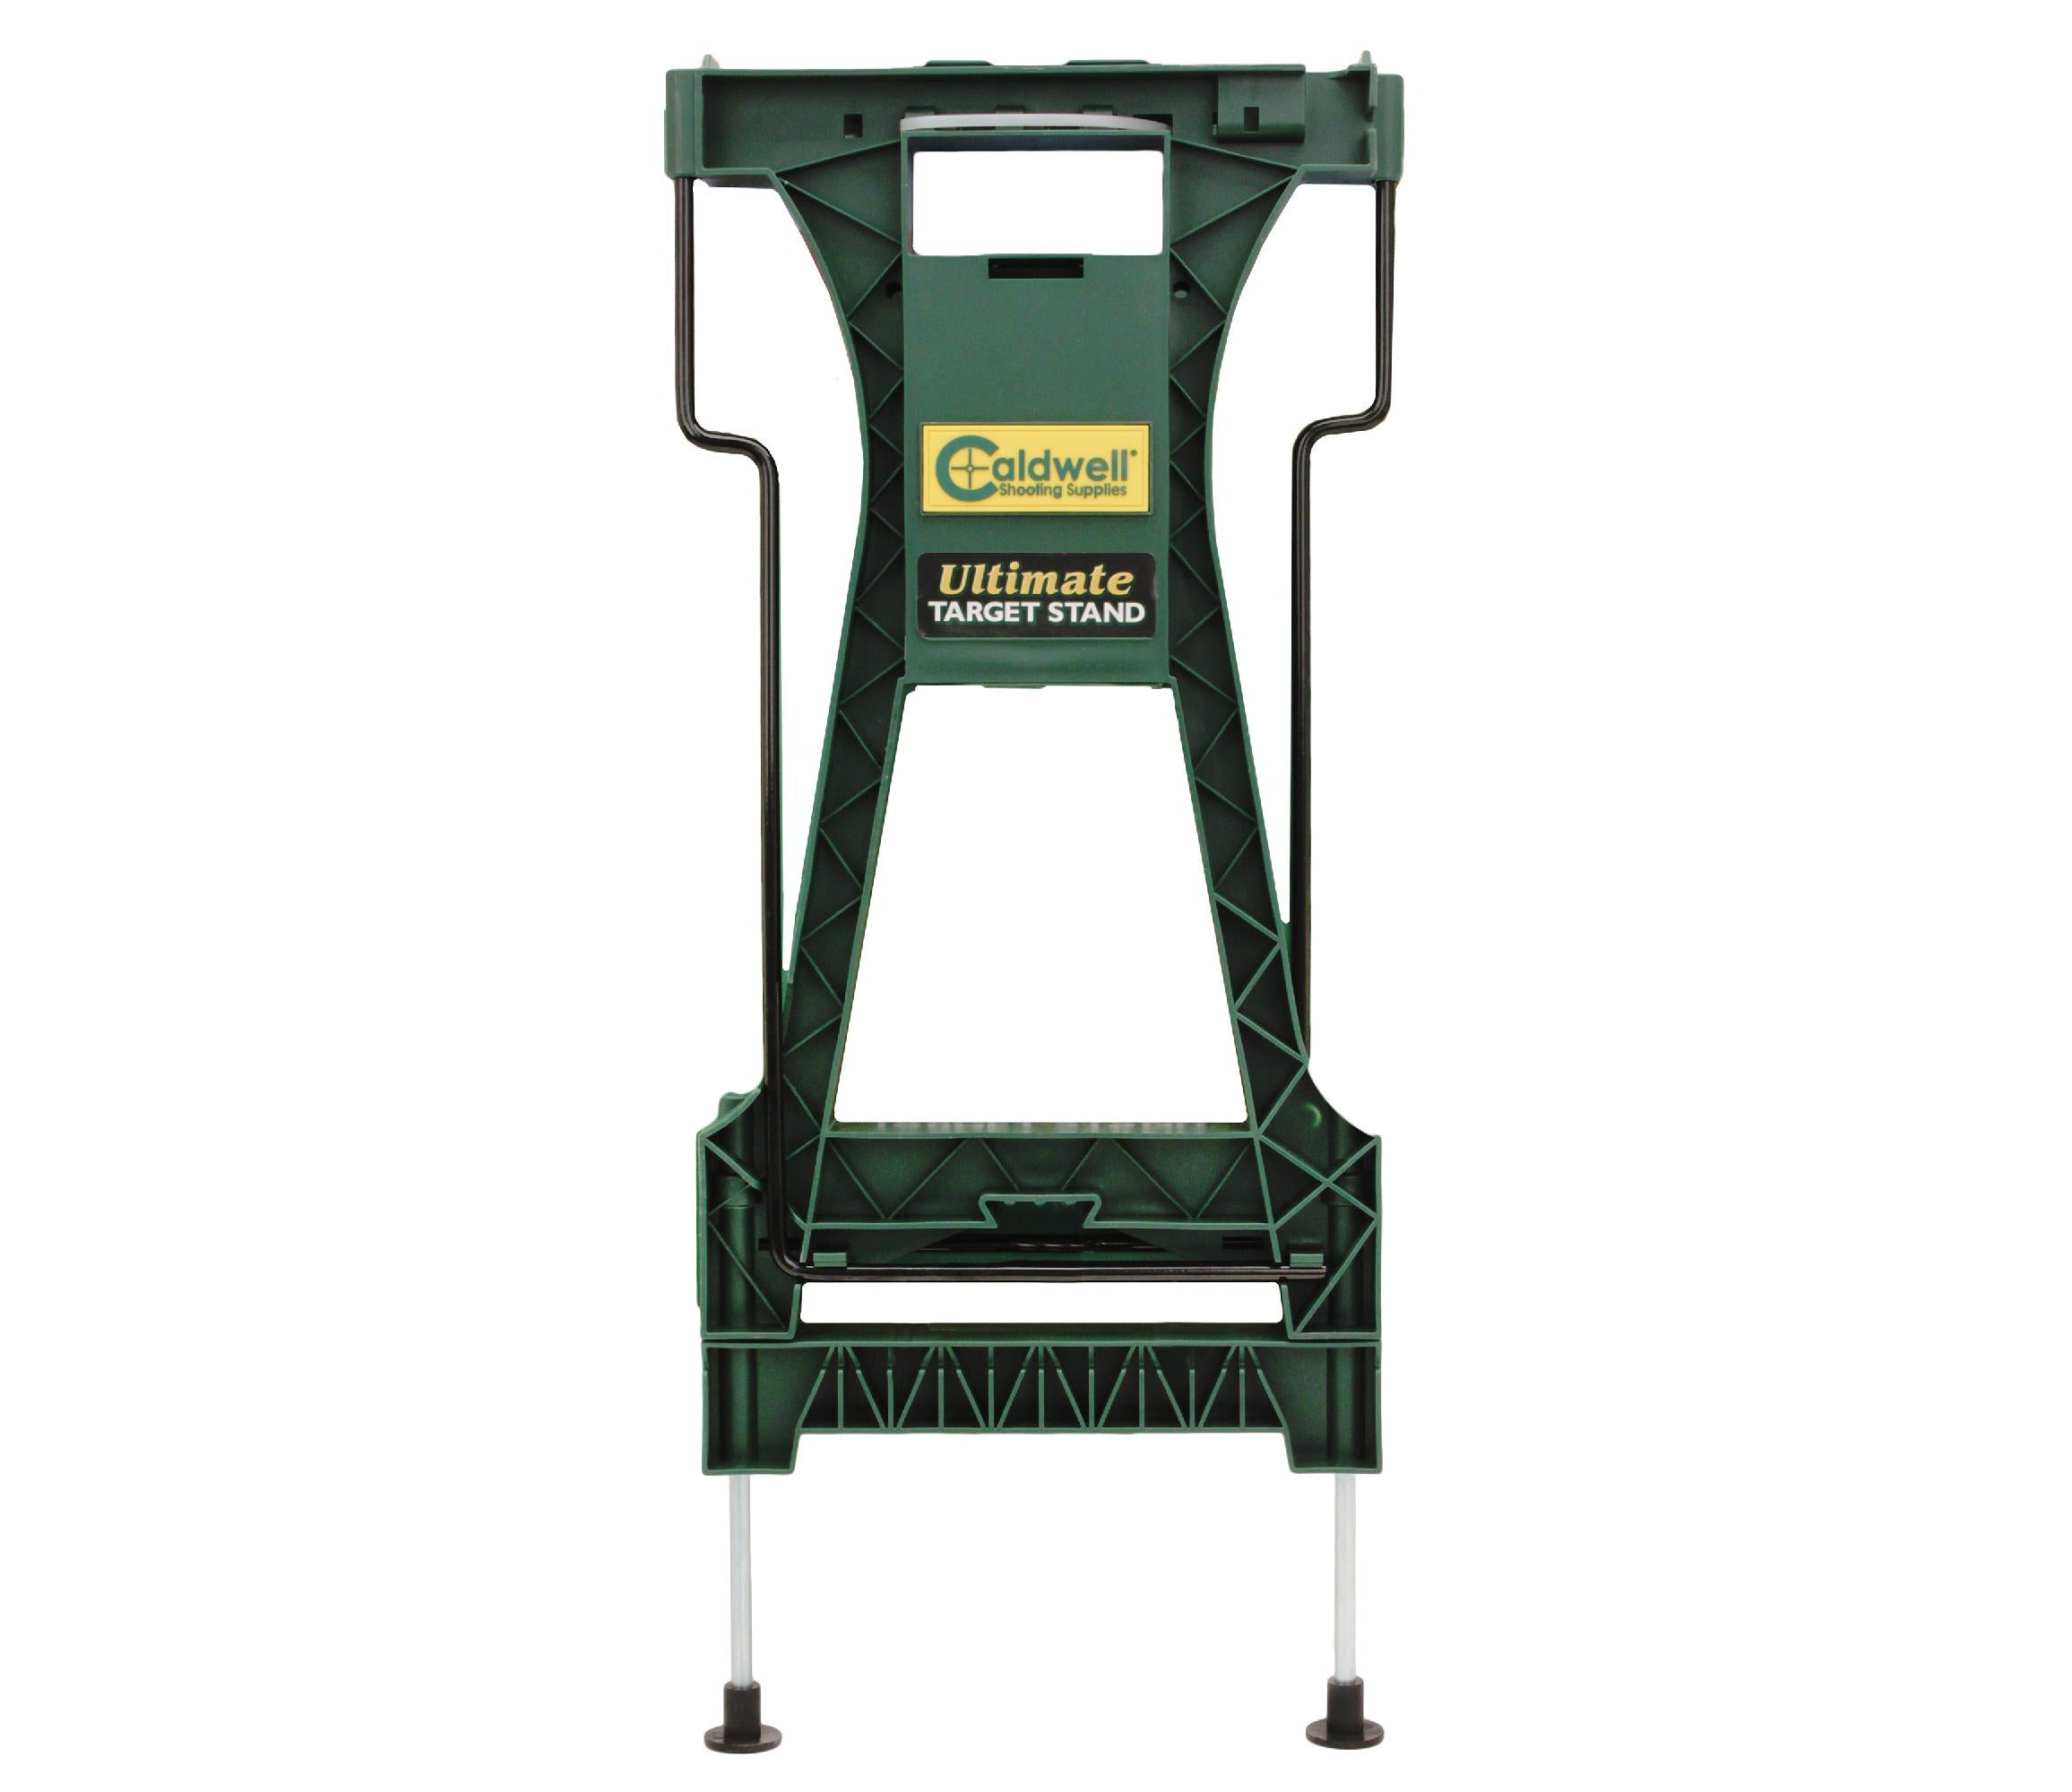 The Caldwell Ultimate Target Stand.